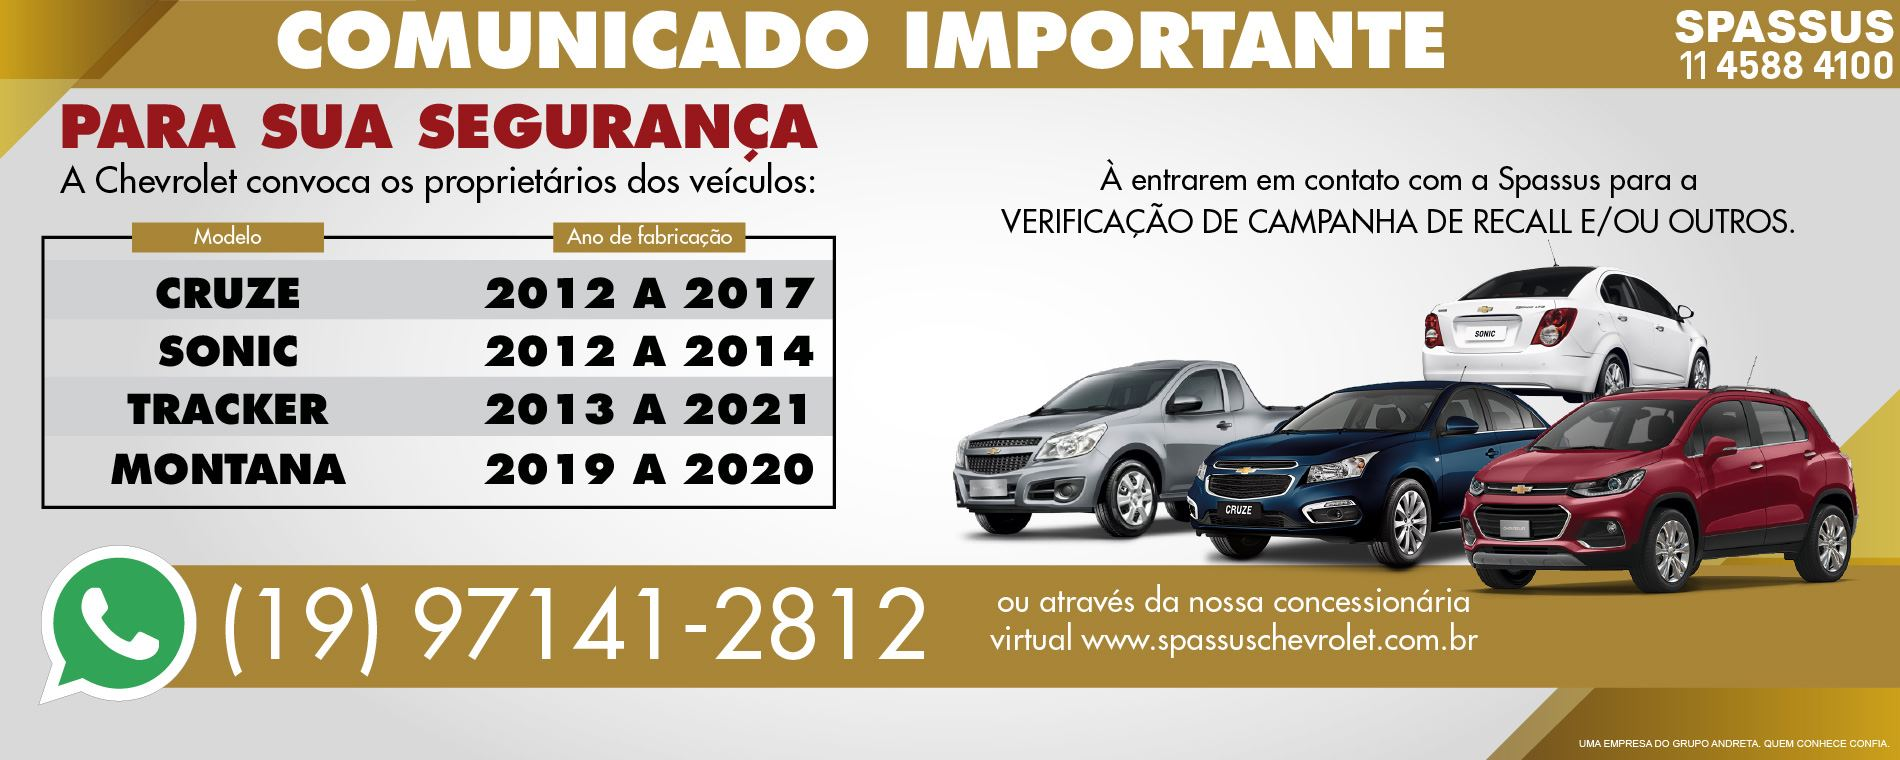 Spassus - Digitais Recall (Home Cruze)